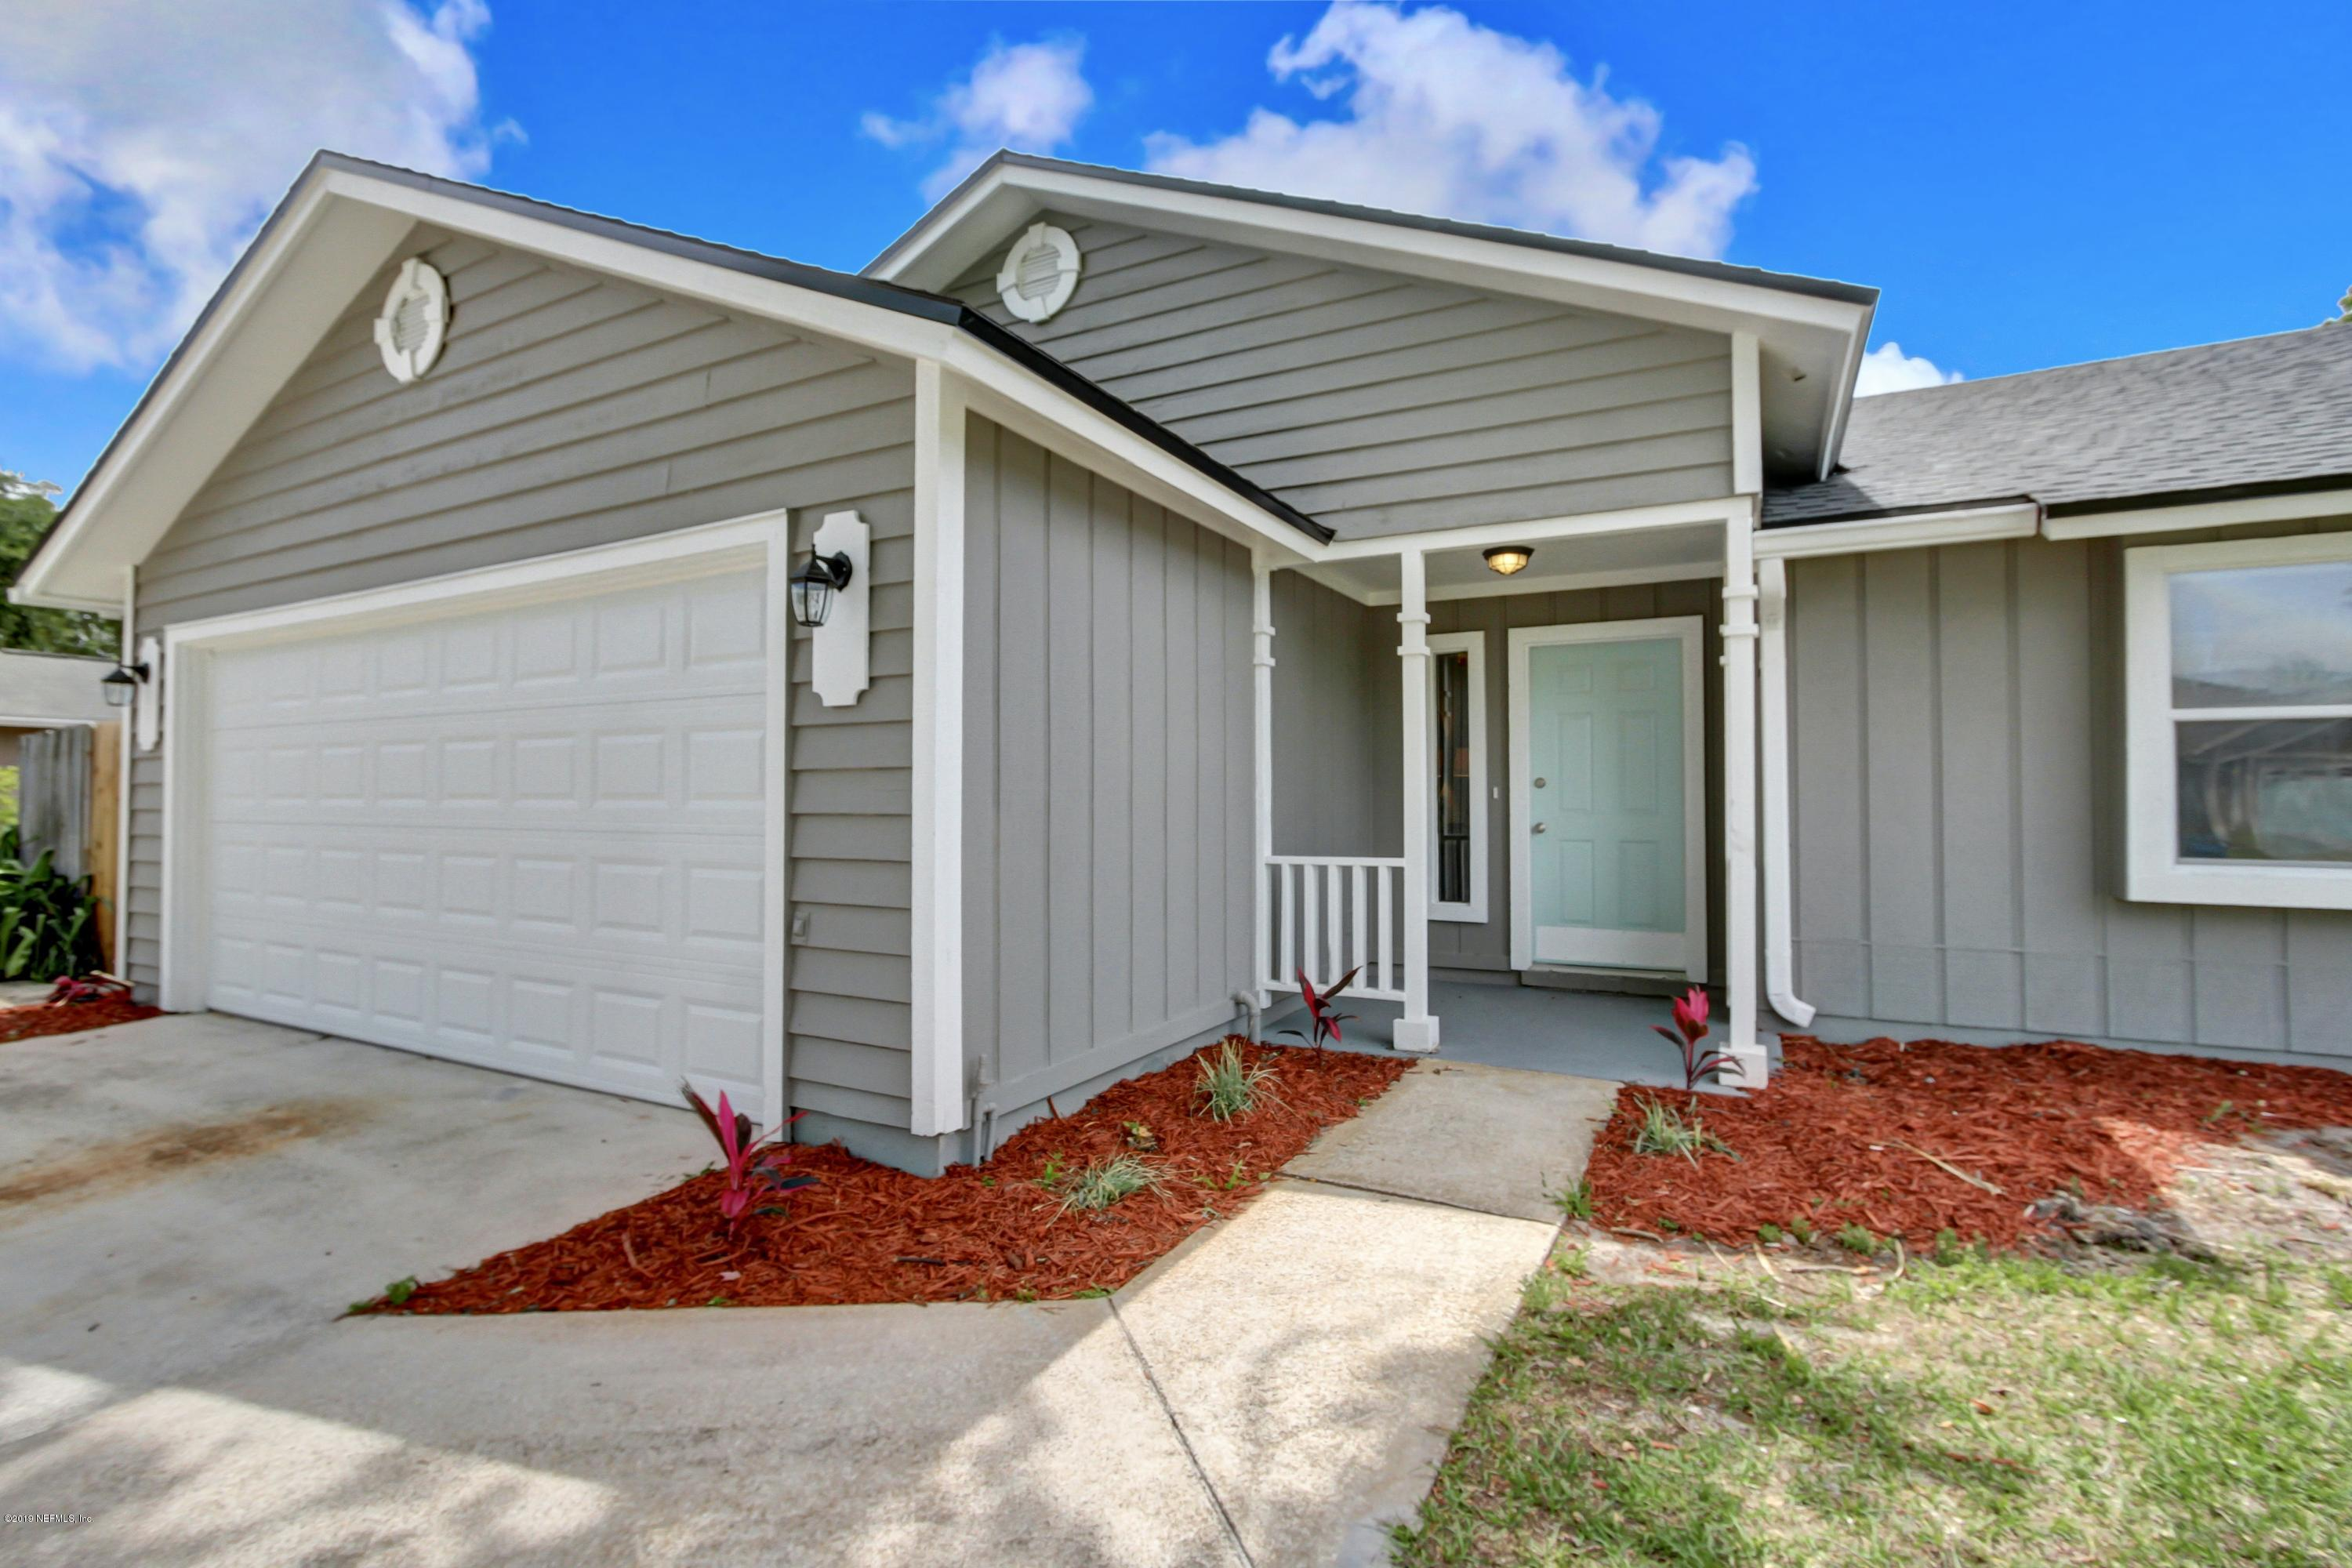 13242 ARBOR VITAE, JACKSONVILLE, FLORIDA 32225, 3 Bedrooms Bedrooms, ,2 BathroomsBathrooms,Residential - single family,For sale,ARBOR VITAE,990660